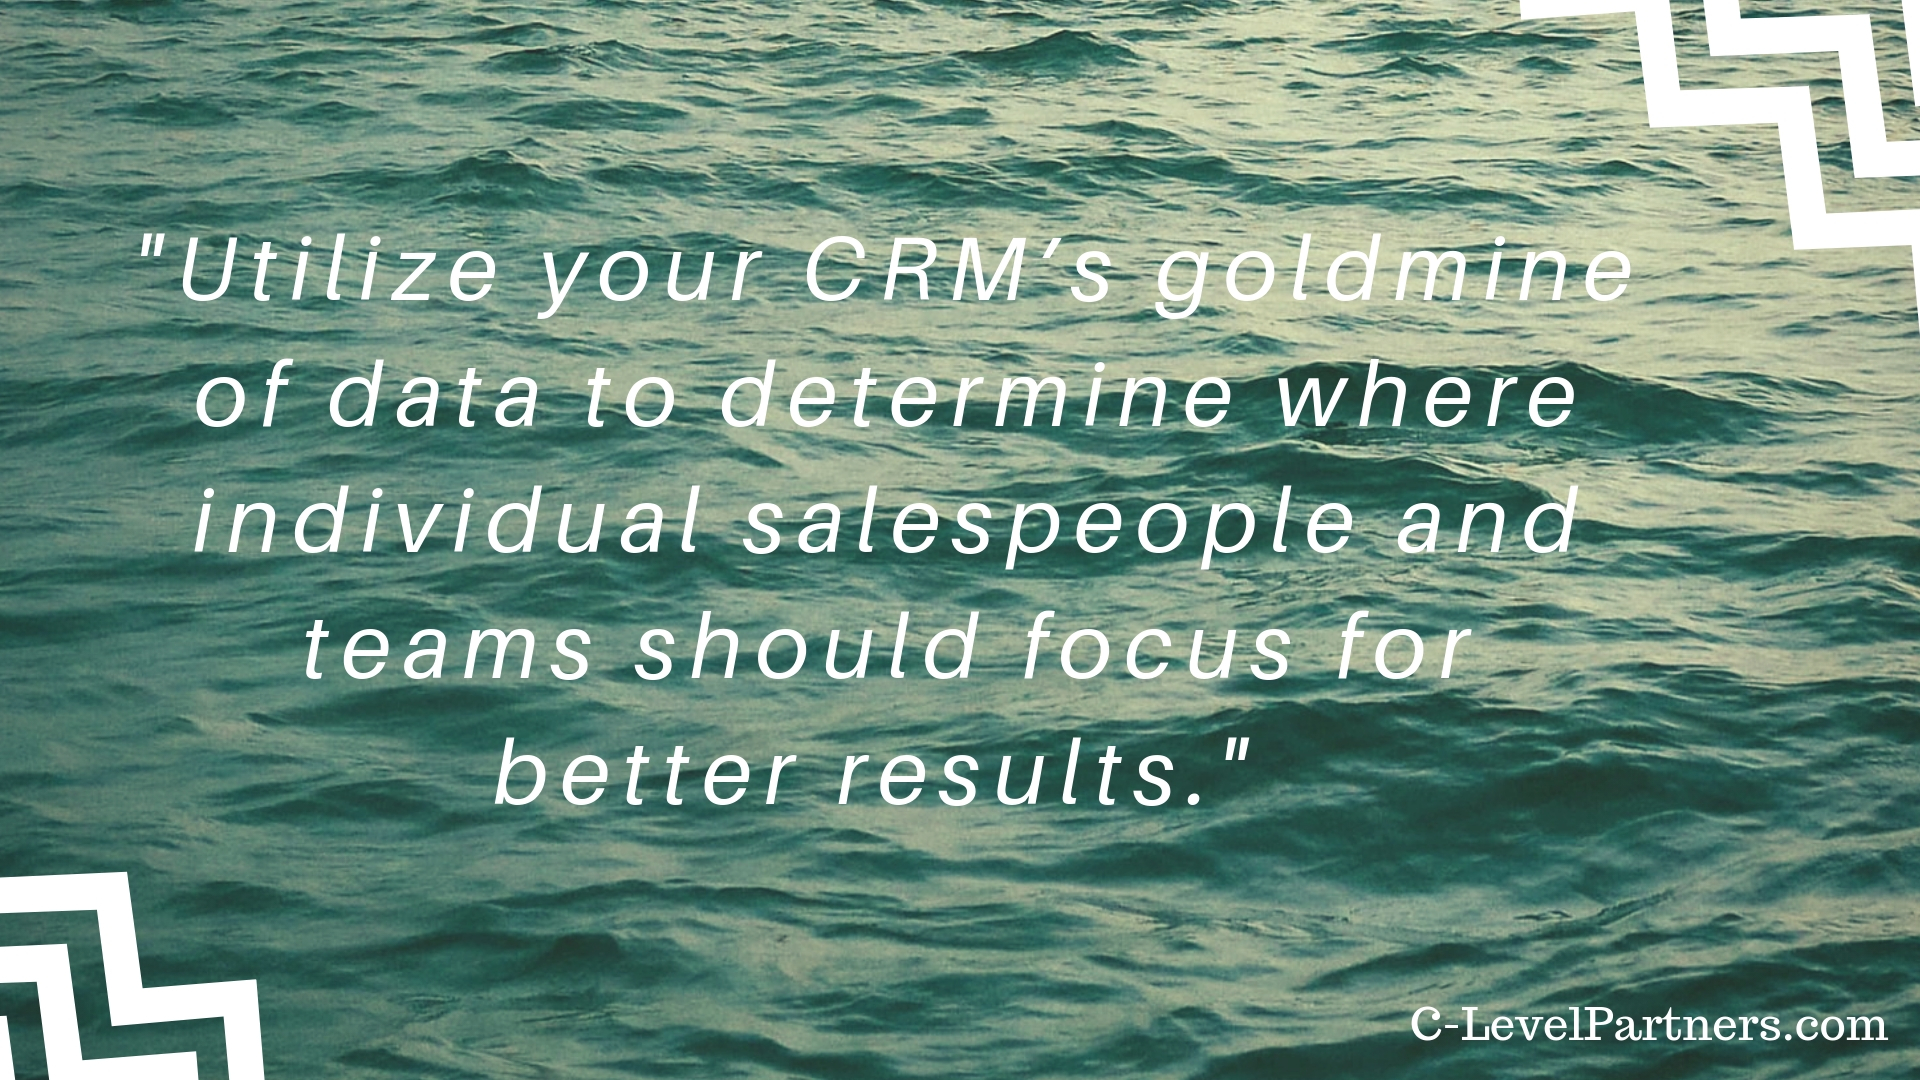 C-Level Partners recommends utilizing your CRM's goldmine of data to determine where individual salespeople and teams should focus for better results.